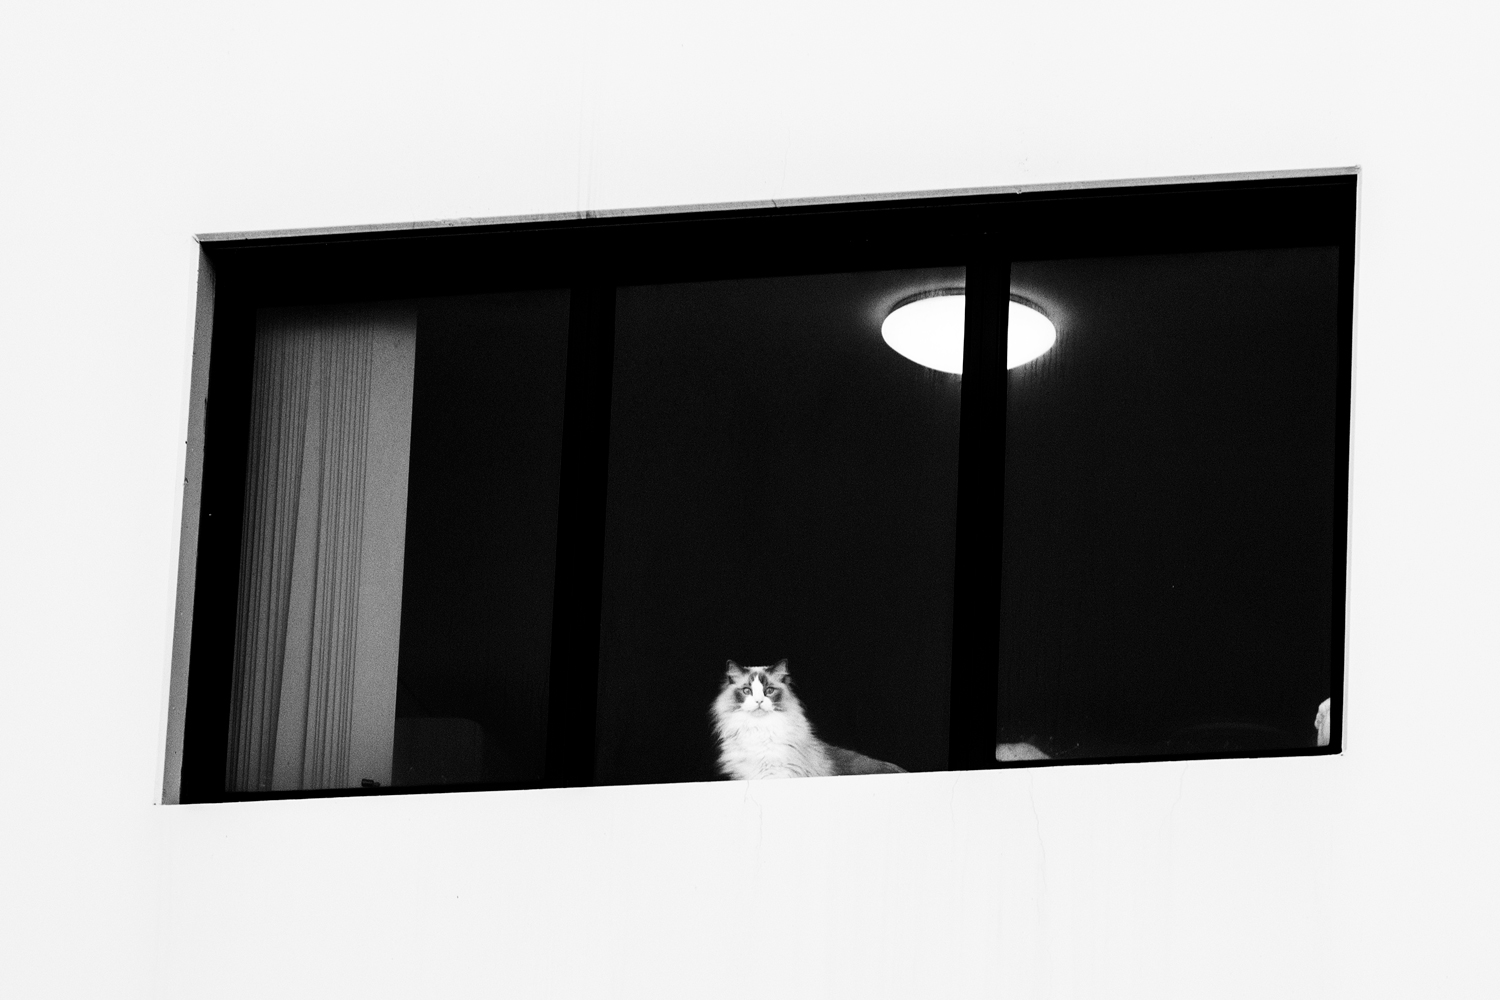 a cat in an apartment window rule of space in photography